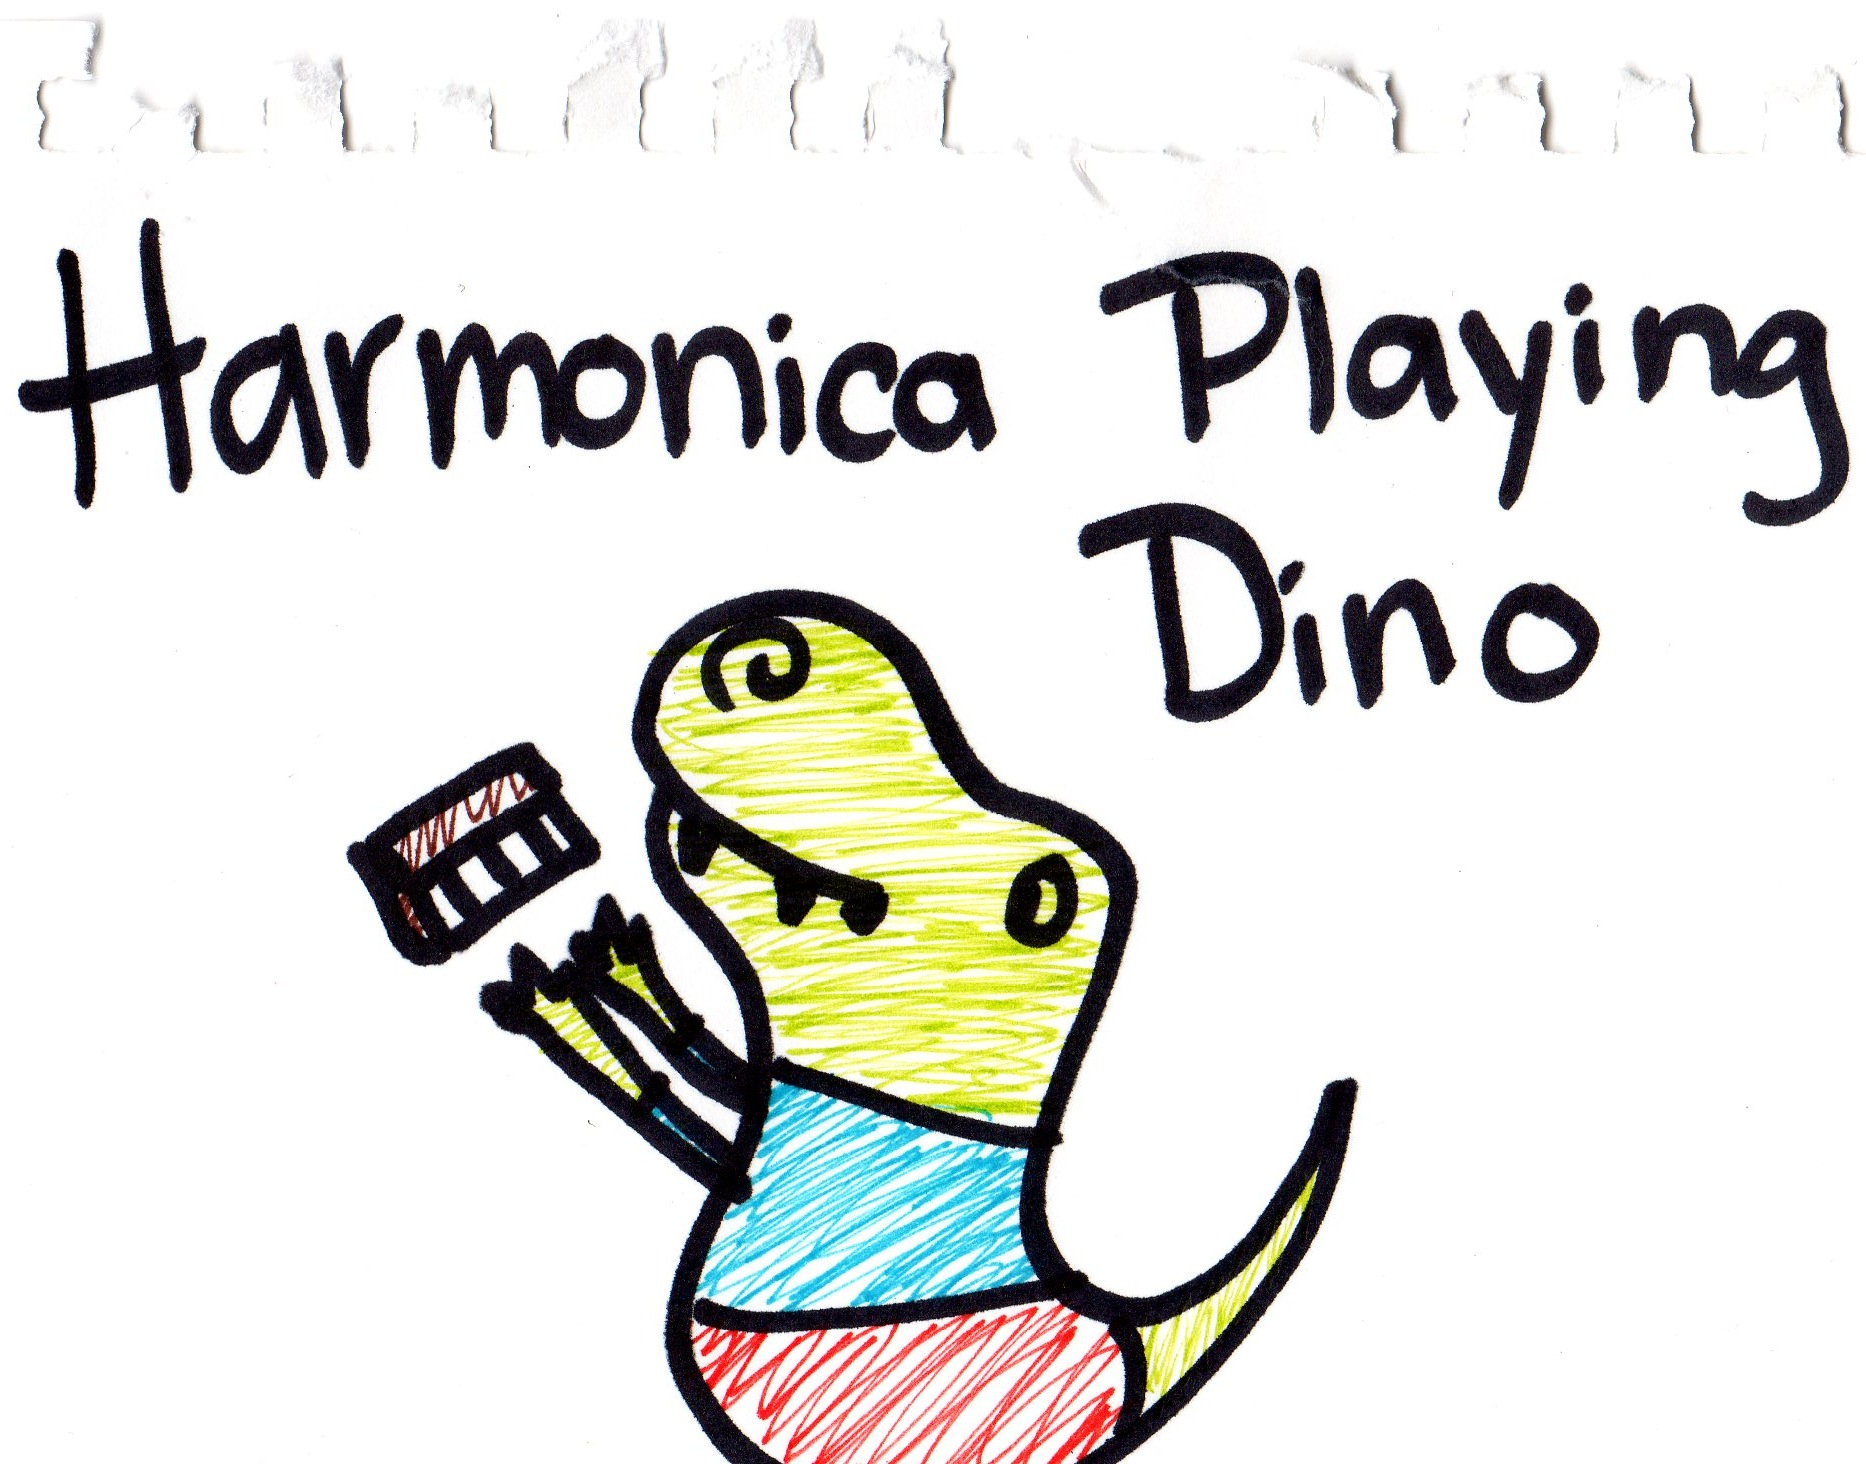 Harmonica Playing Dinosaur